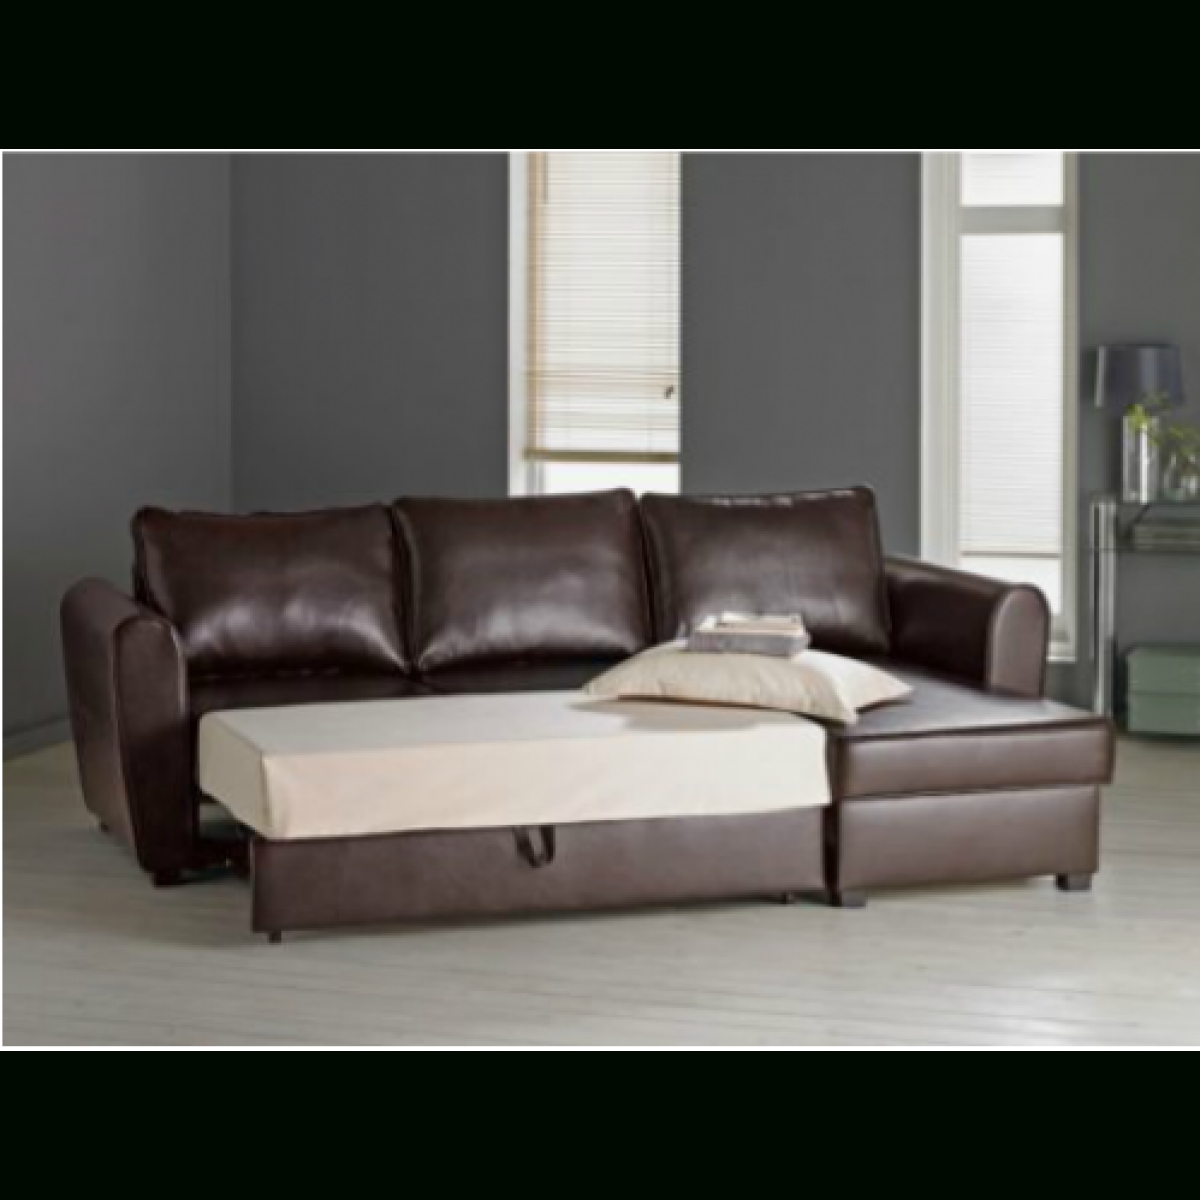 New Siena Fabric Corner Sofa Bed With Storage - Charcoal inside Leather Corner Sofa Bed